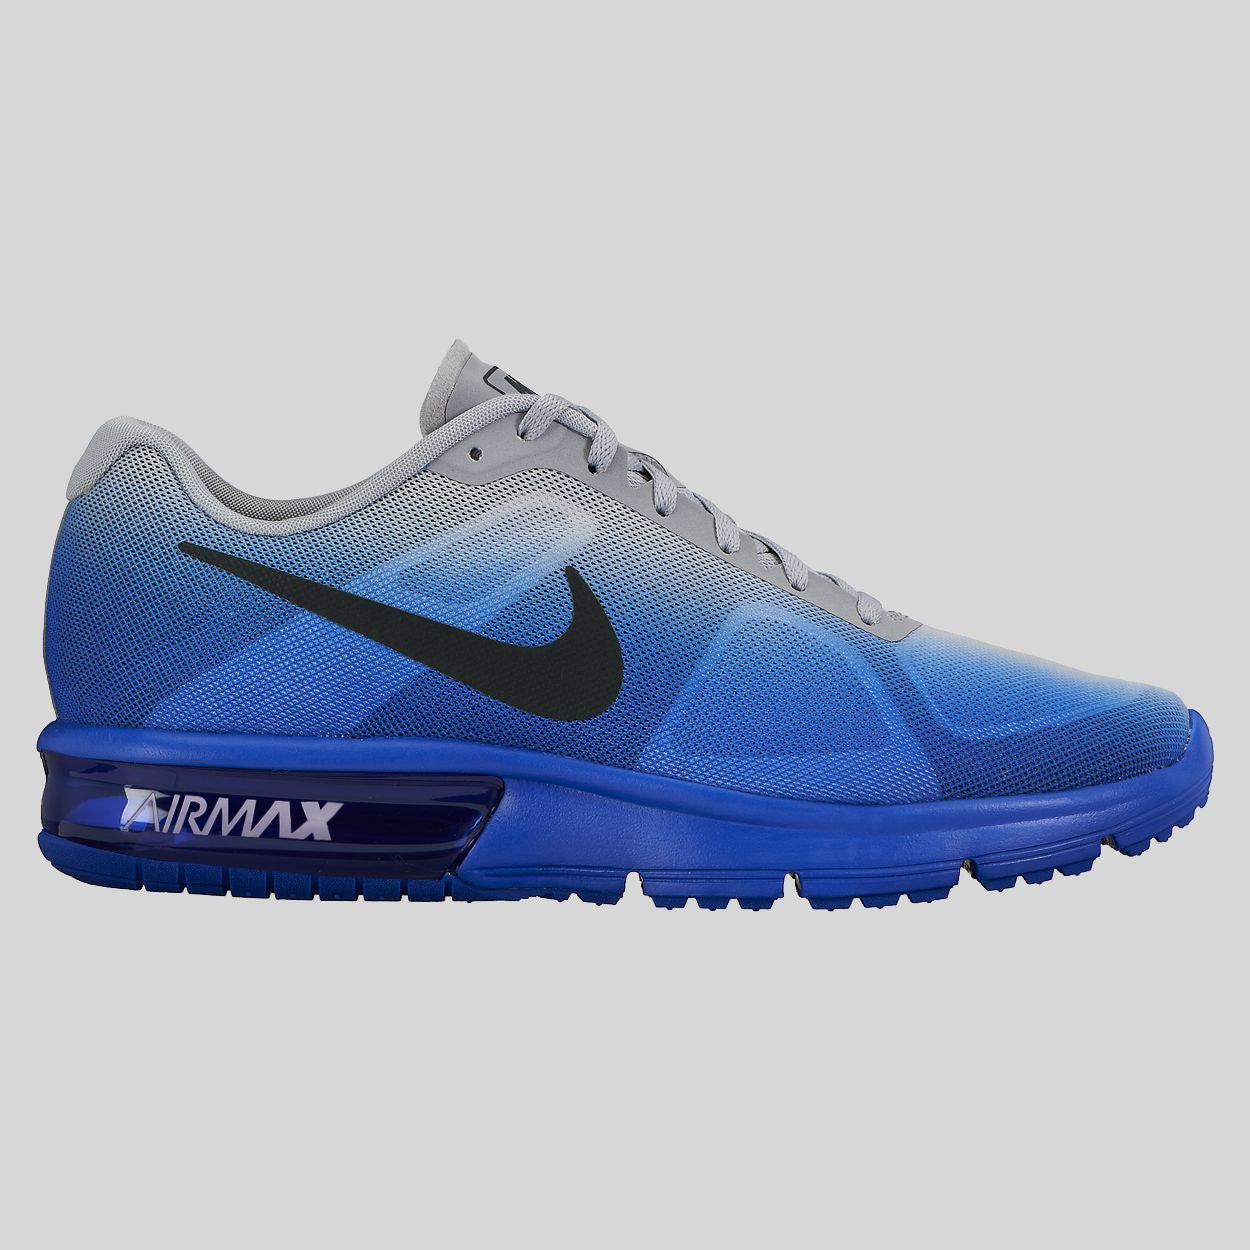 nike air max sequent racer blue wolf grey fade 719912 405 kix files. Black Bedroom Furniture Sets. Home Design Ideas